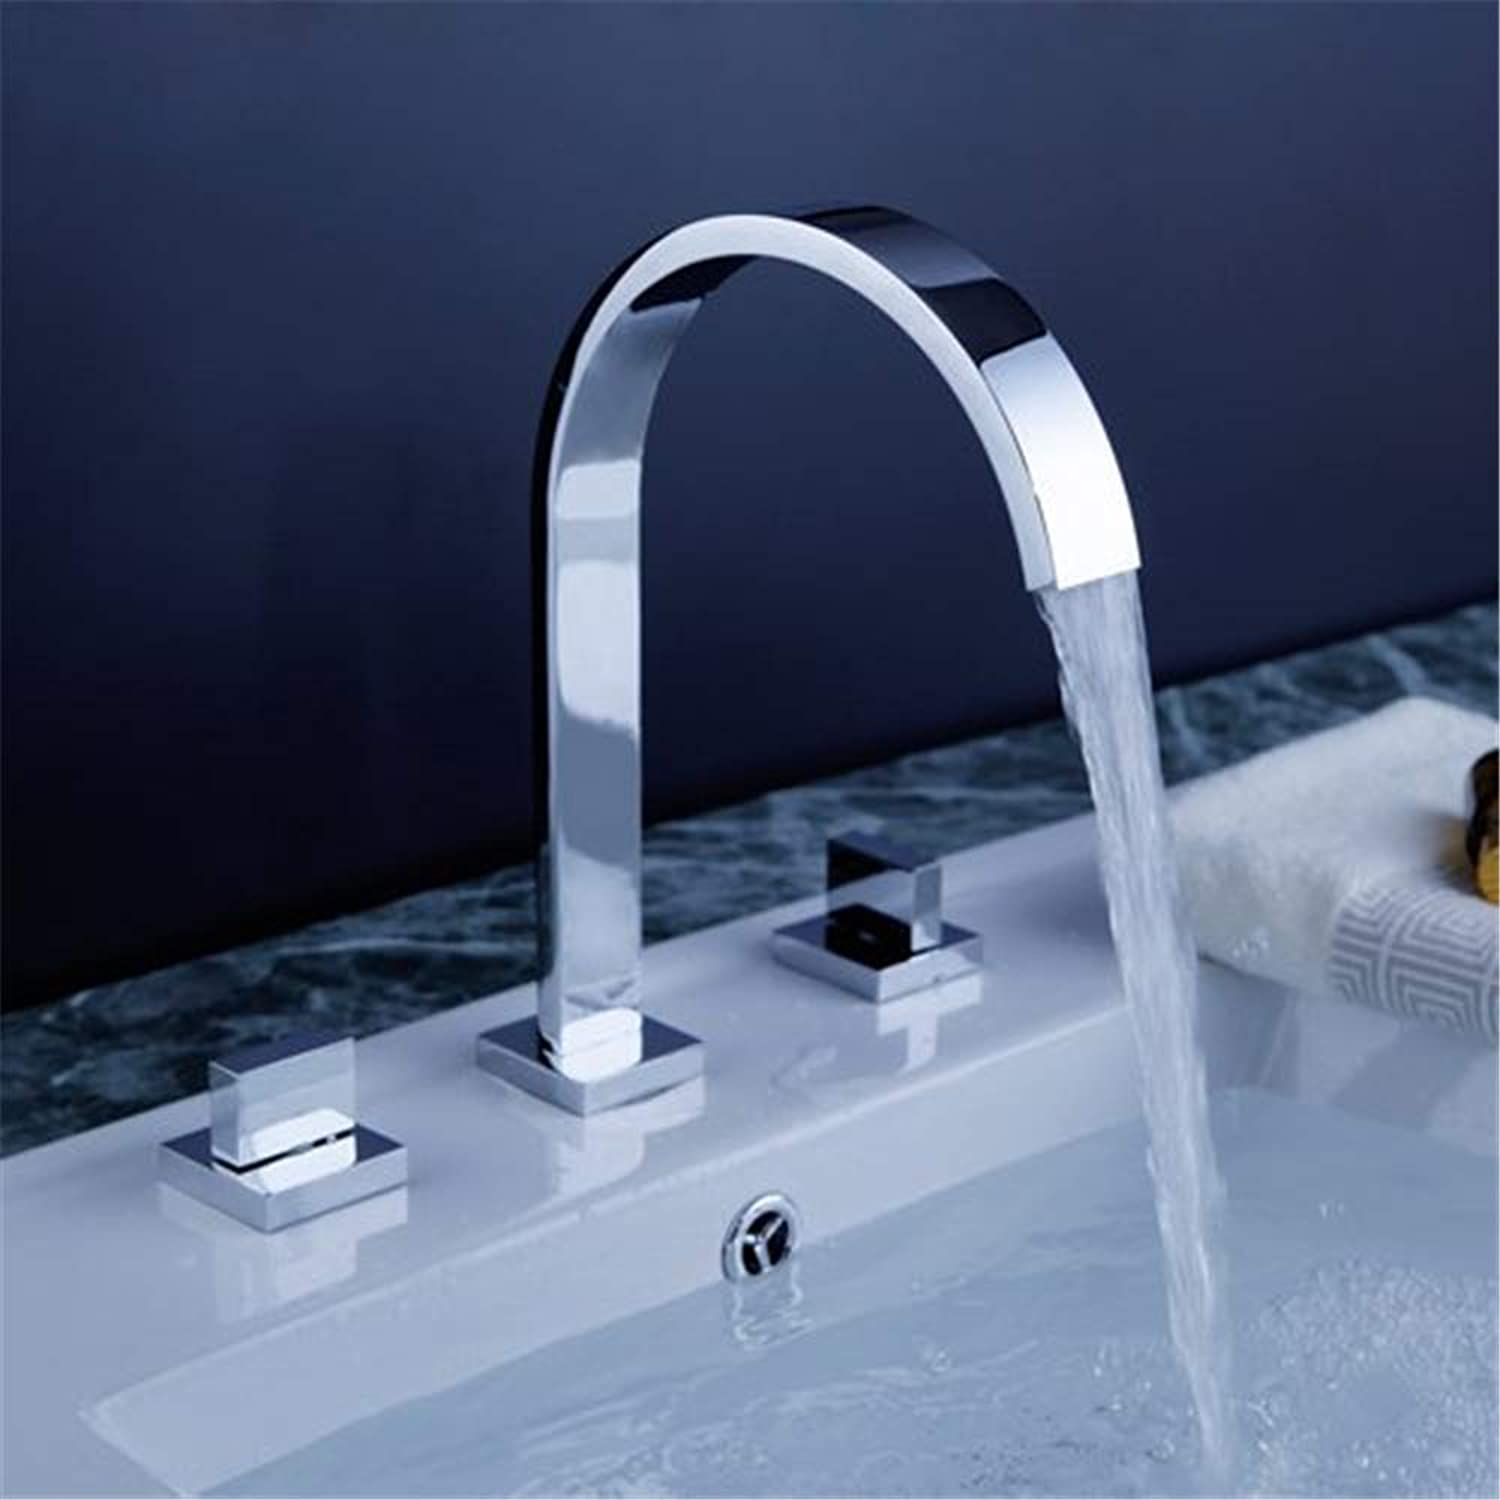 YBHNB Bathroom Sink Taps, Fashion Basin Faucets Brass Polished Chrome Deck Mounted Square 3 Hole Double Handle Hot And Cold Mixing Faucet